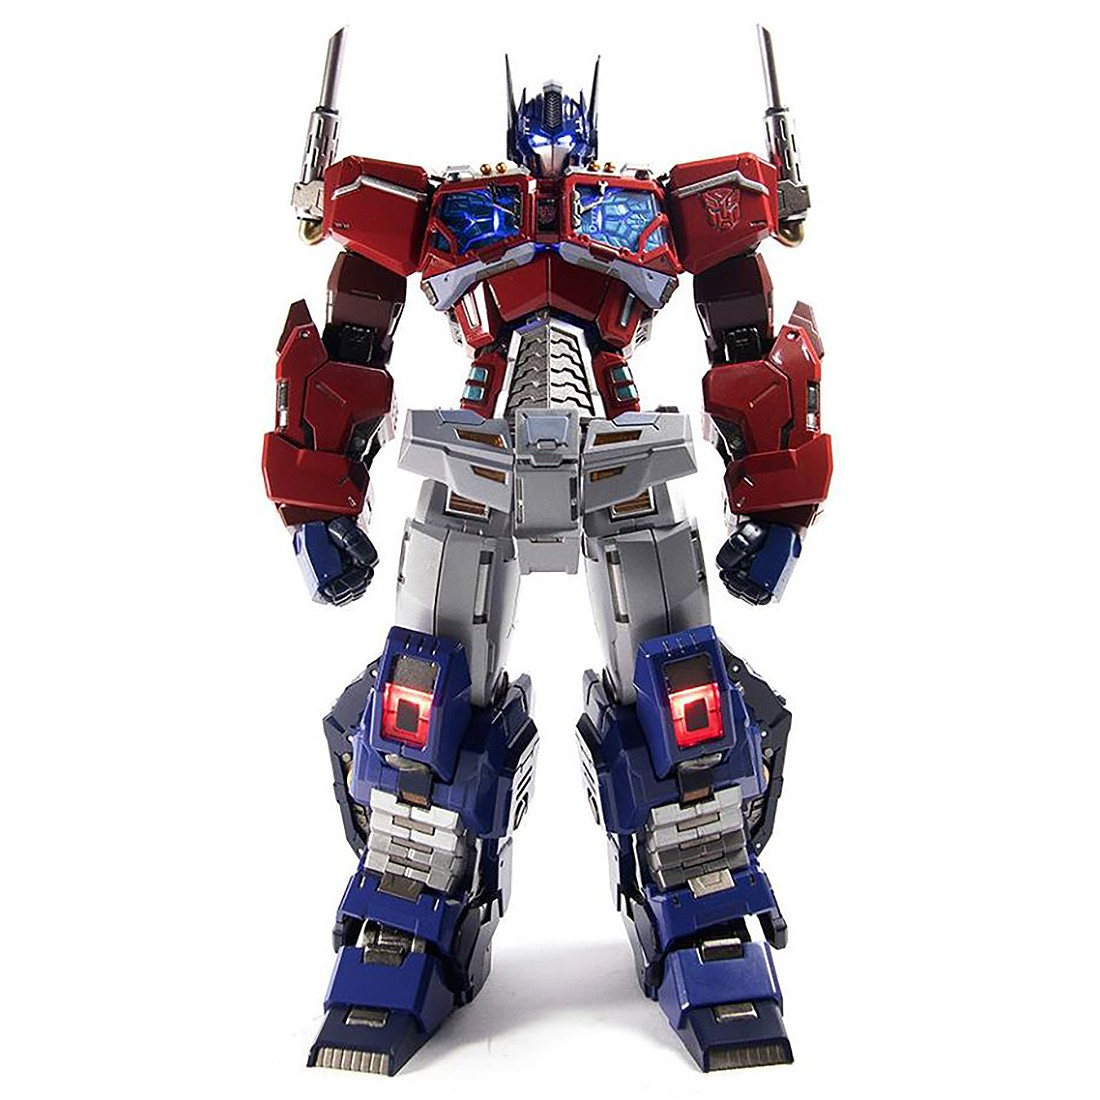 Flame Toys Kuro Kara Kuri Transformers #04 Optimus Prime Figure (red)